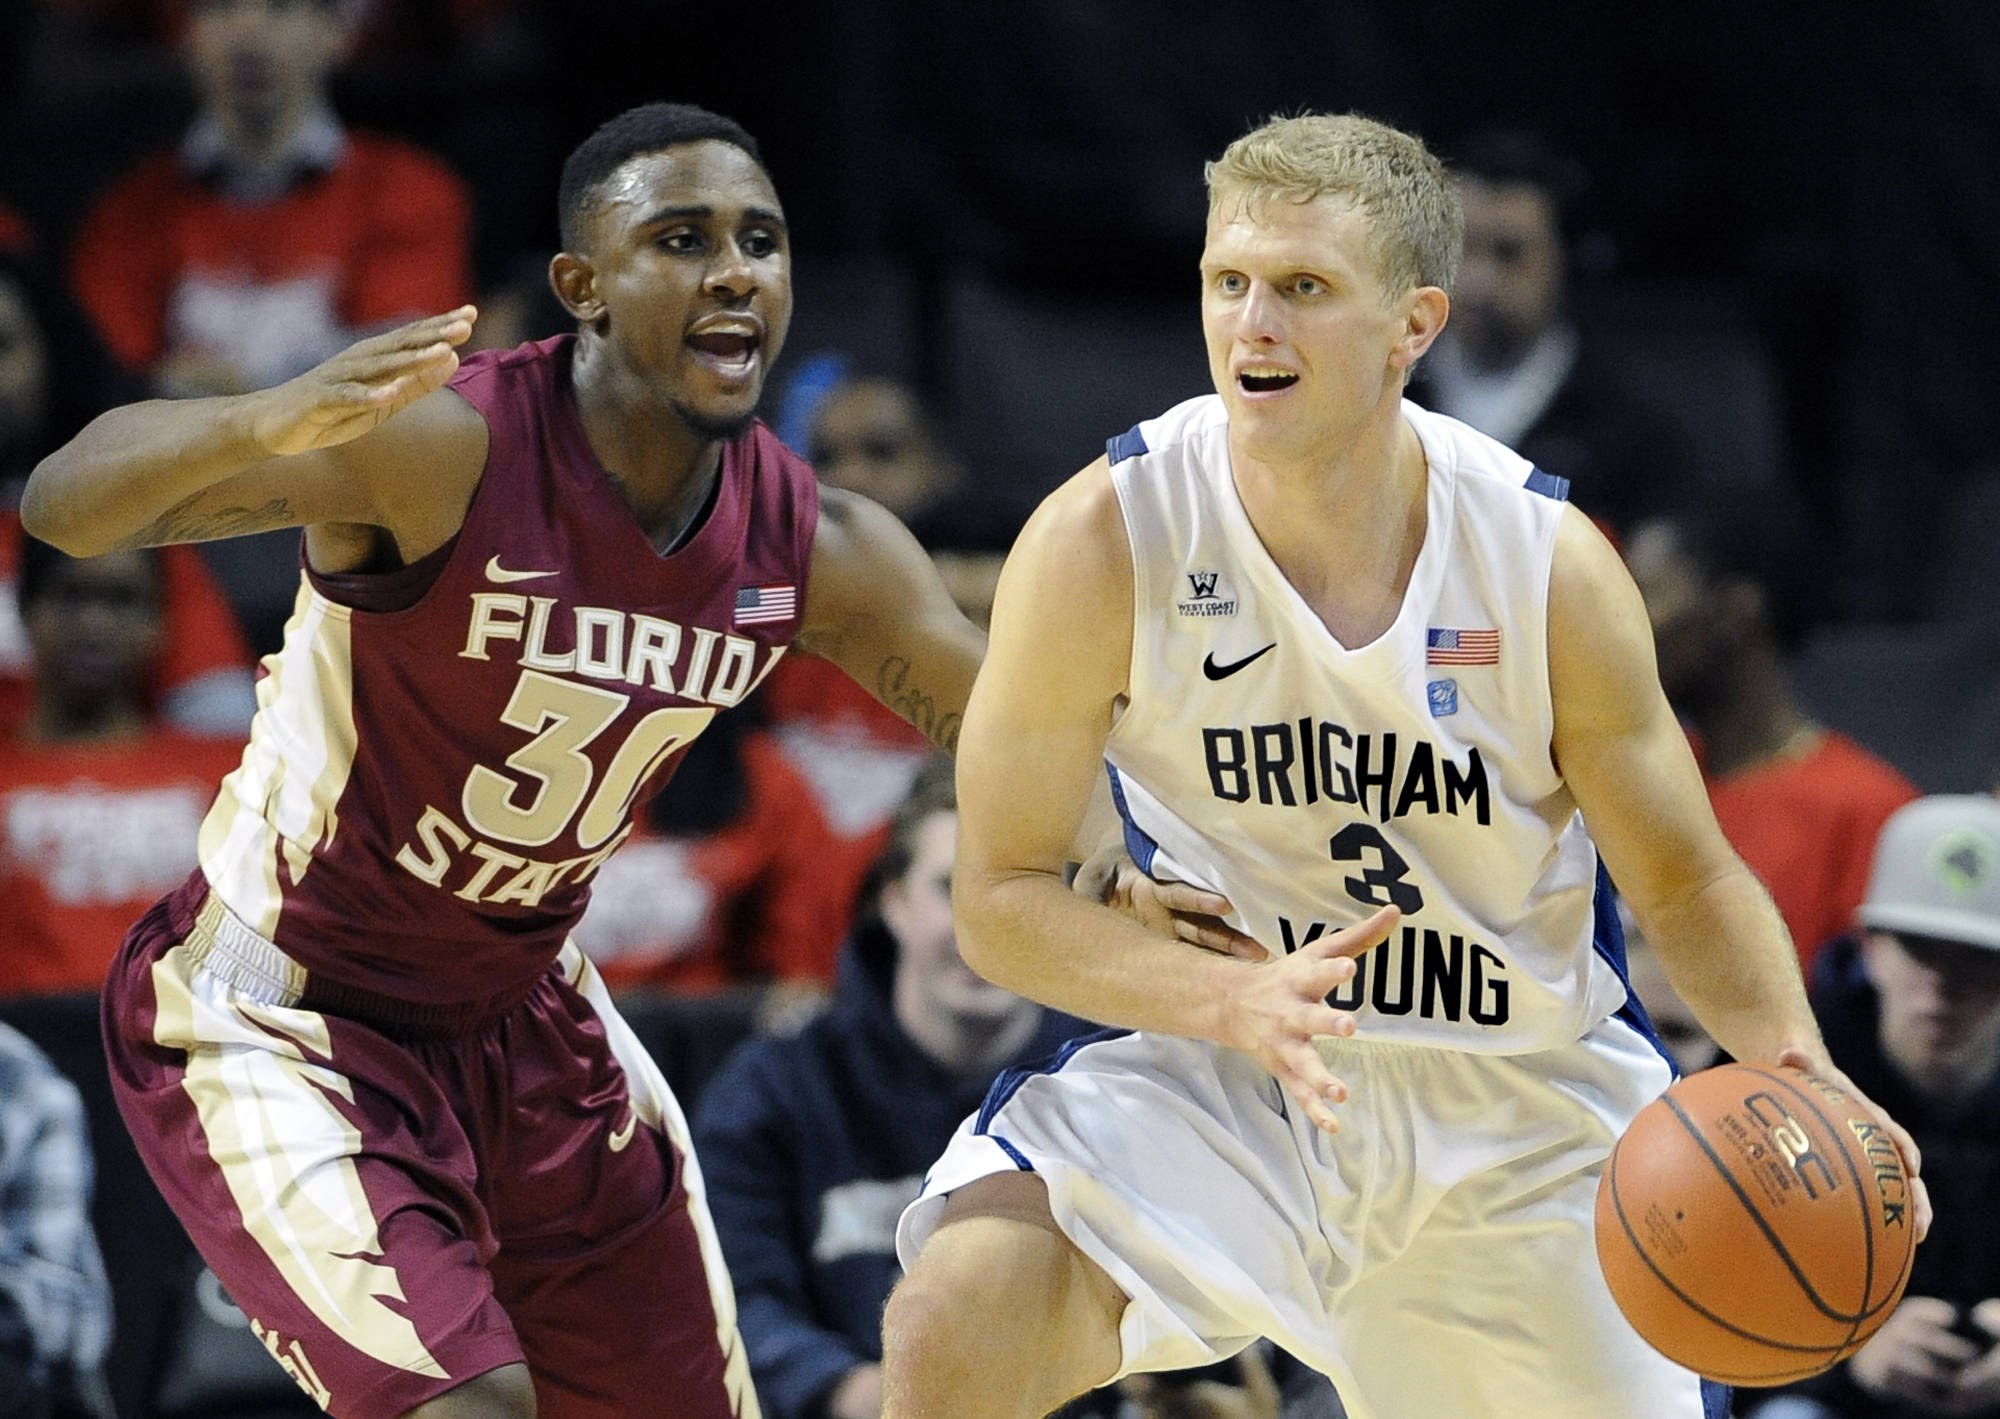 Florida State's Ian Miller (30) guards Brigham Young's Tyler Haws (3) in the first half. (AP Photo/Kathy Kmonicek)